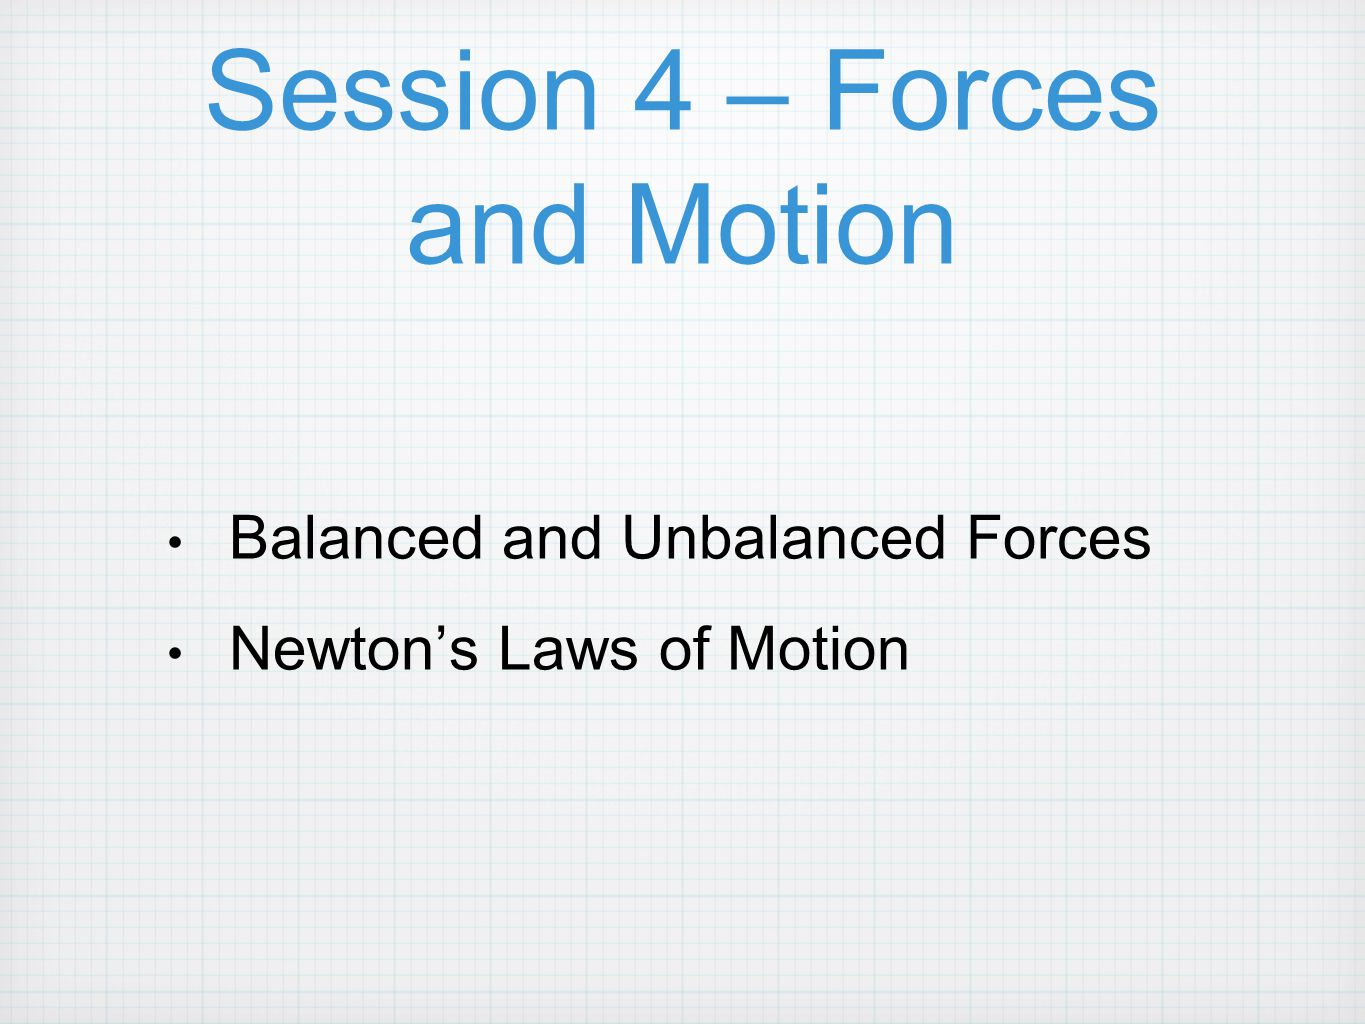 Session 4 – Forces and Motion Balanced and Unbalanced Forces Newton's Laws of Motion